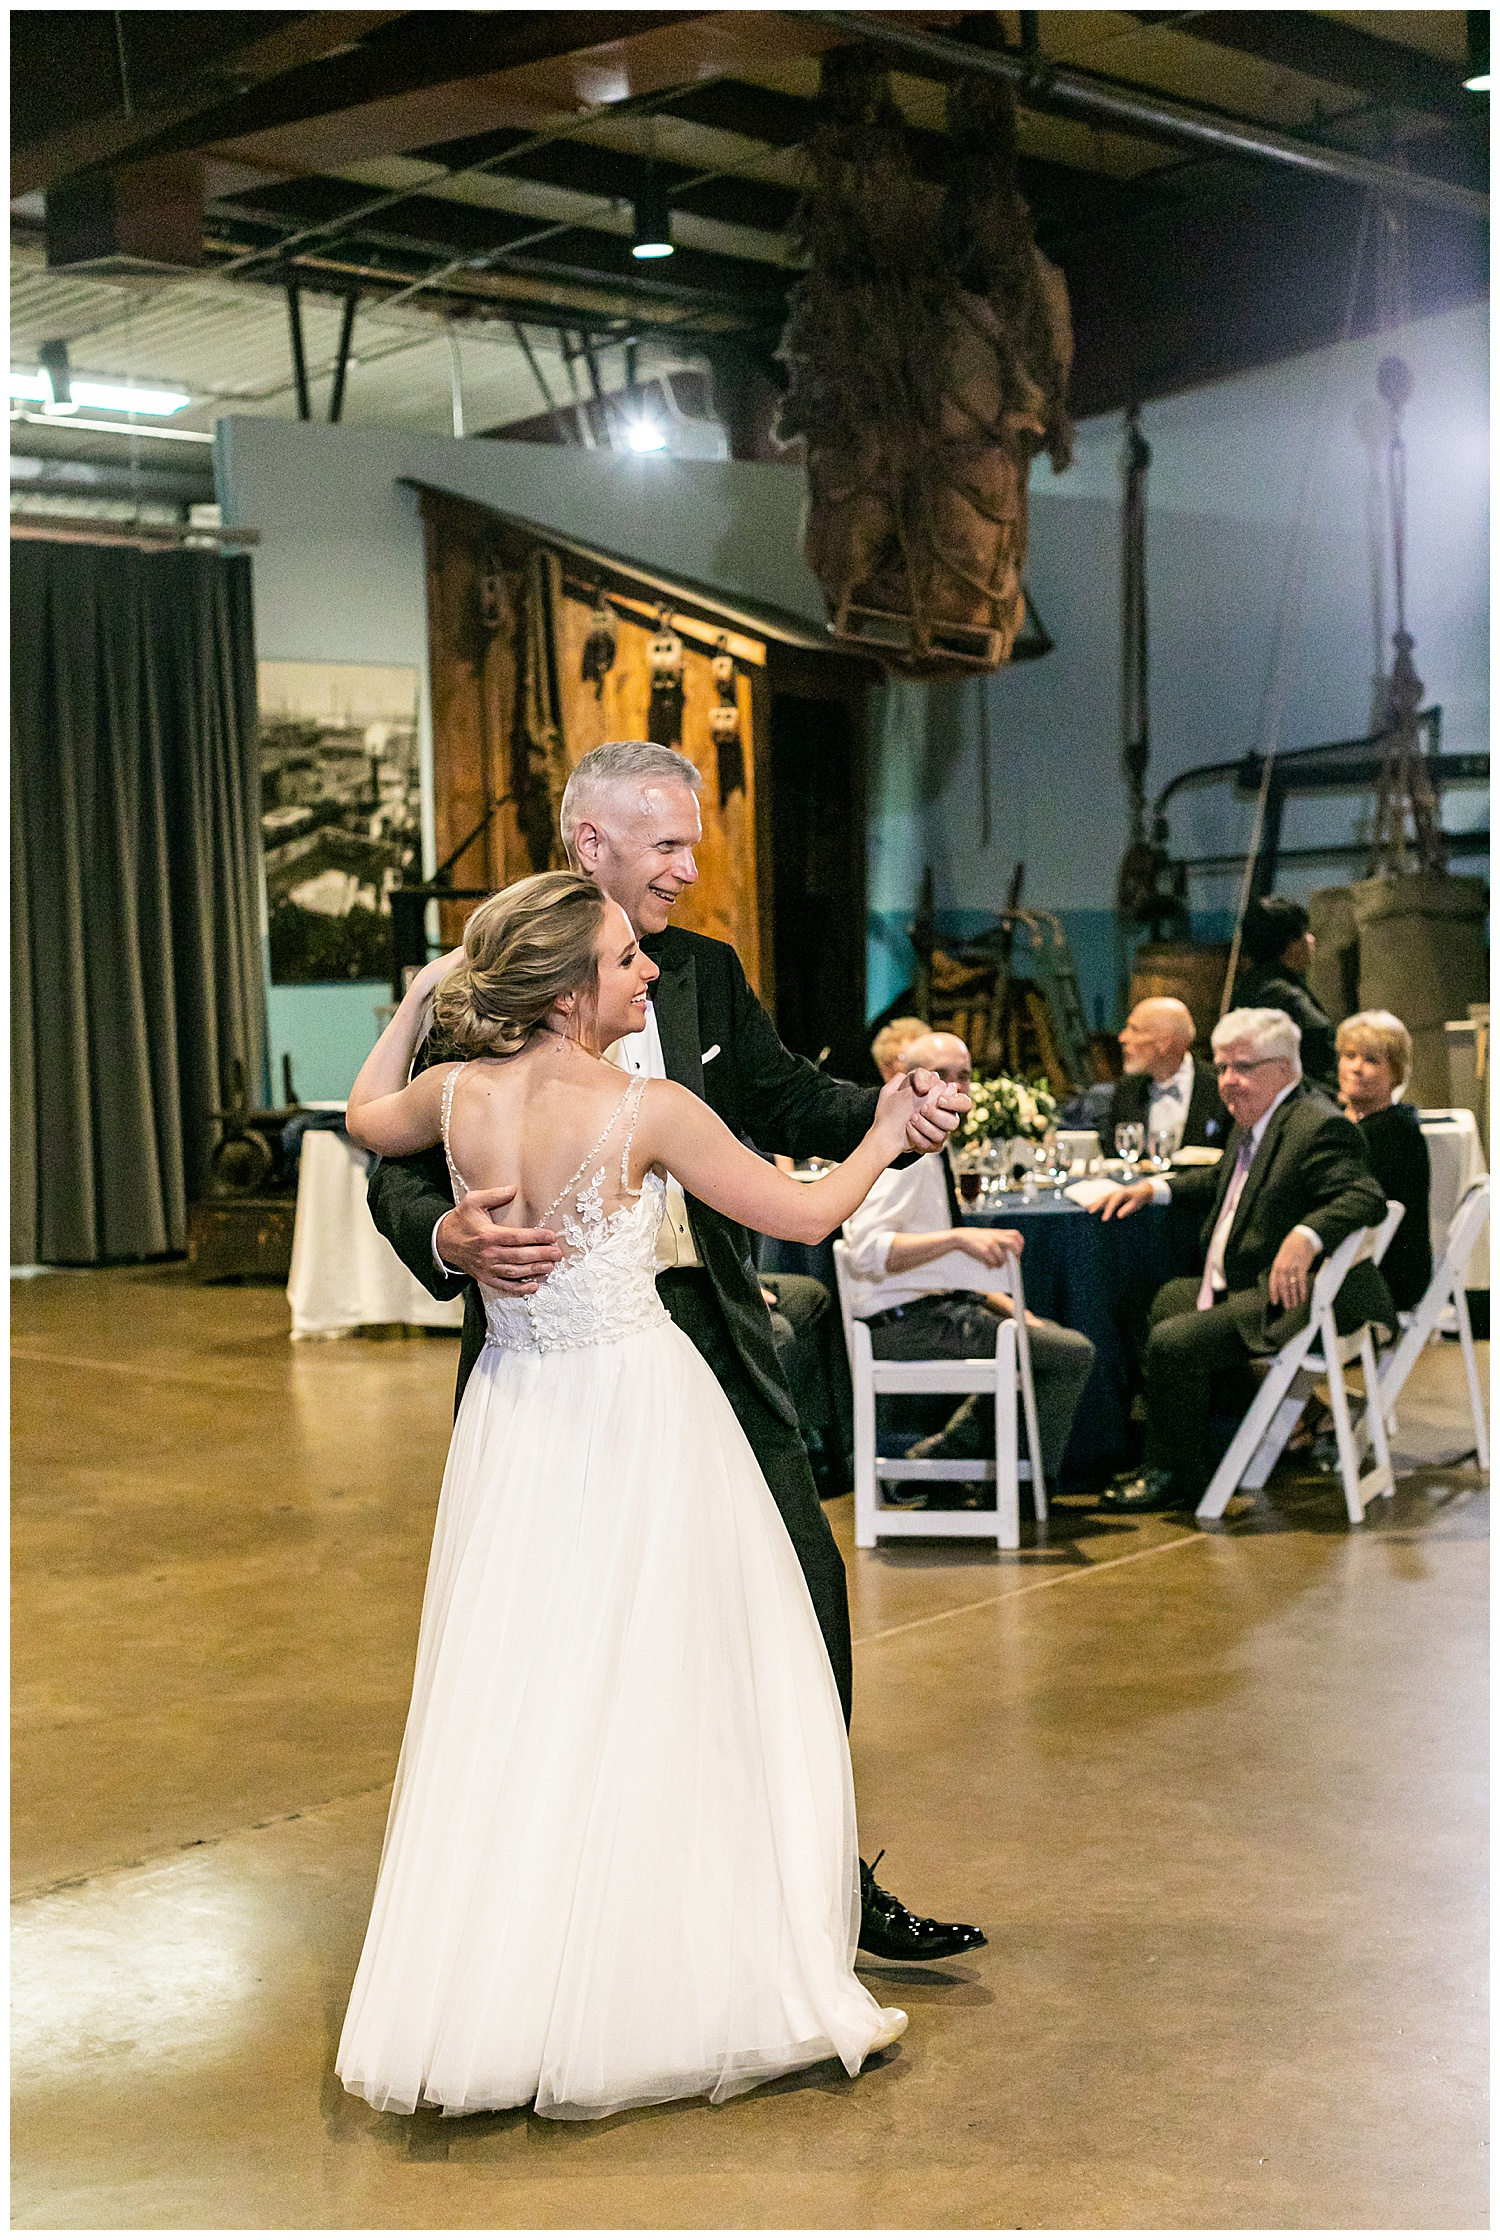 Jenn James Baltimore Museum of Industry Wedding Living Radiant Photography photos_0137.jpg